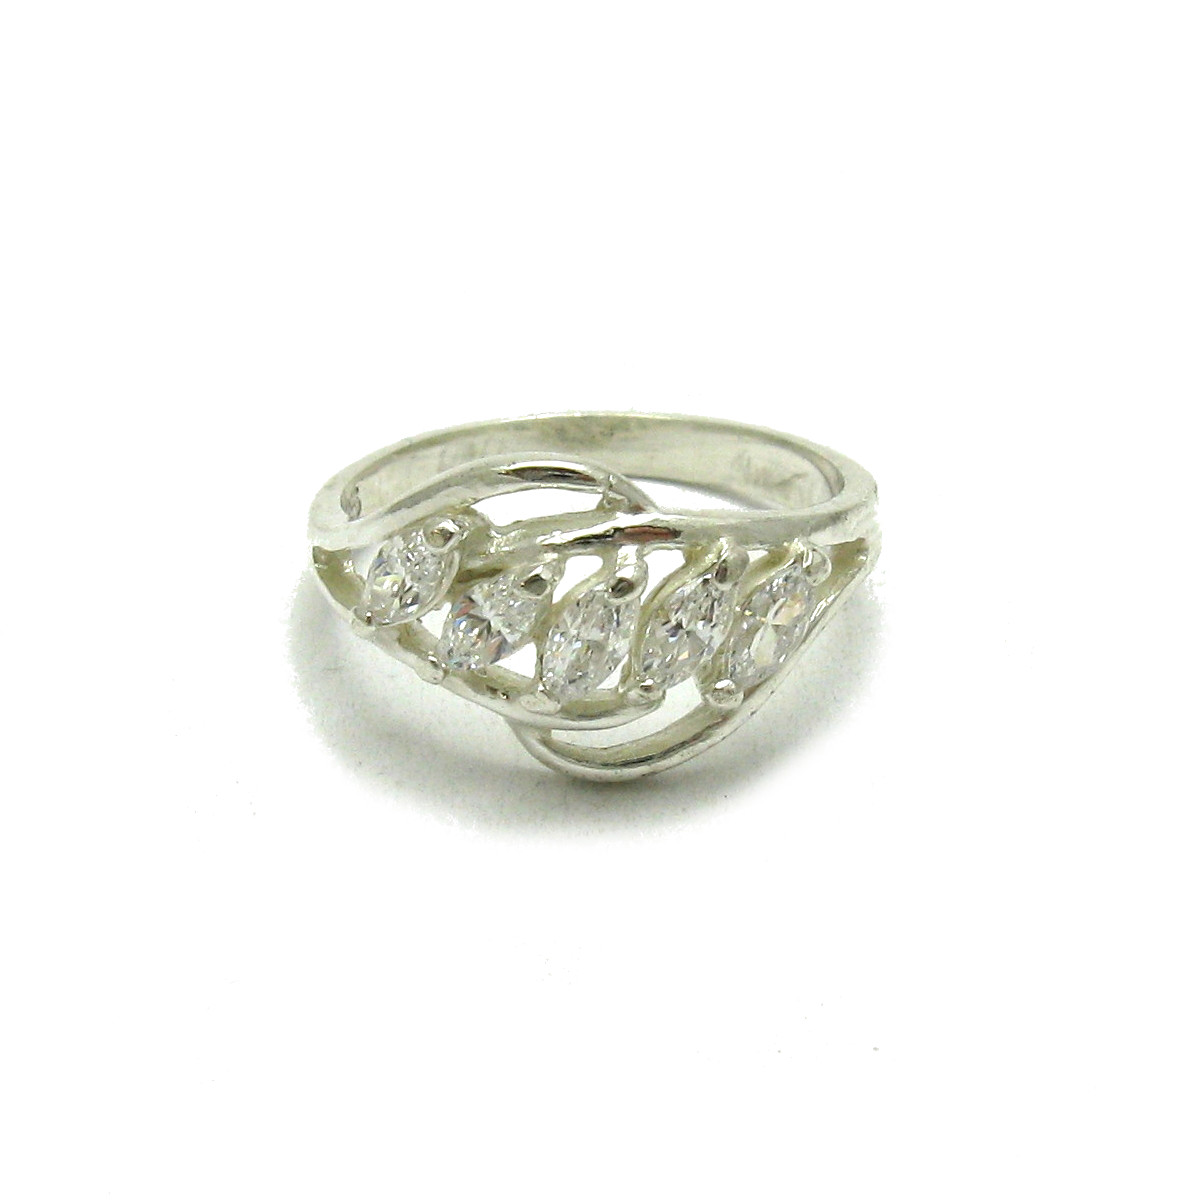 Silver ring - R000227